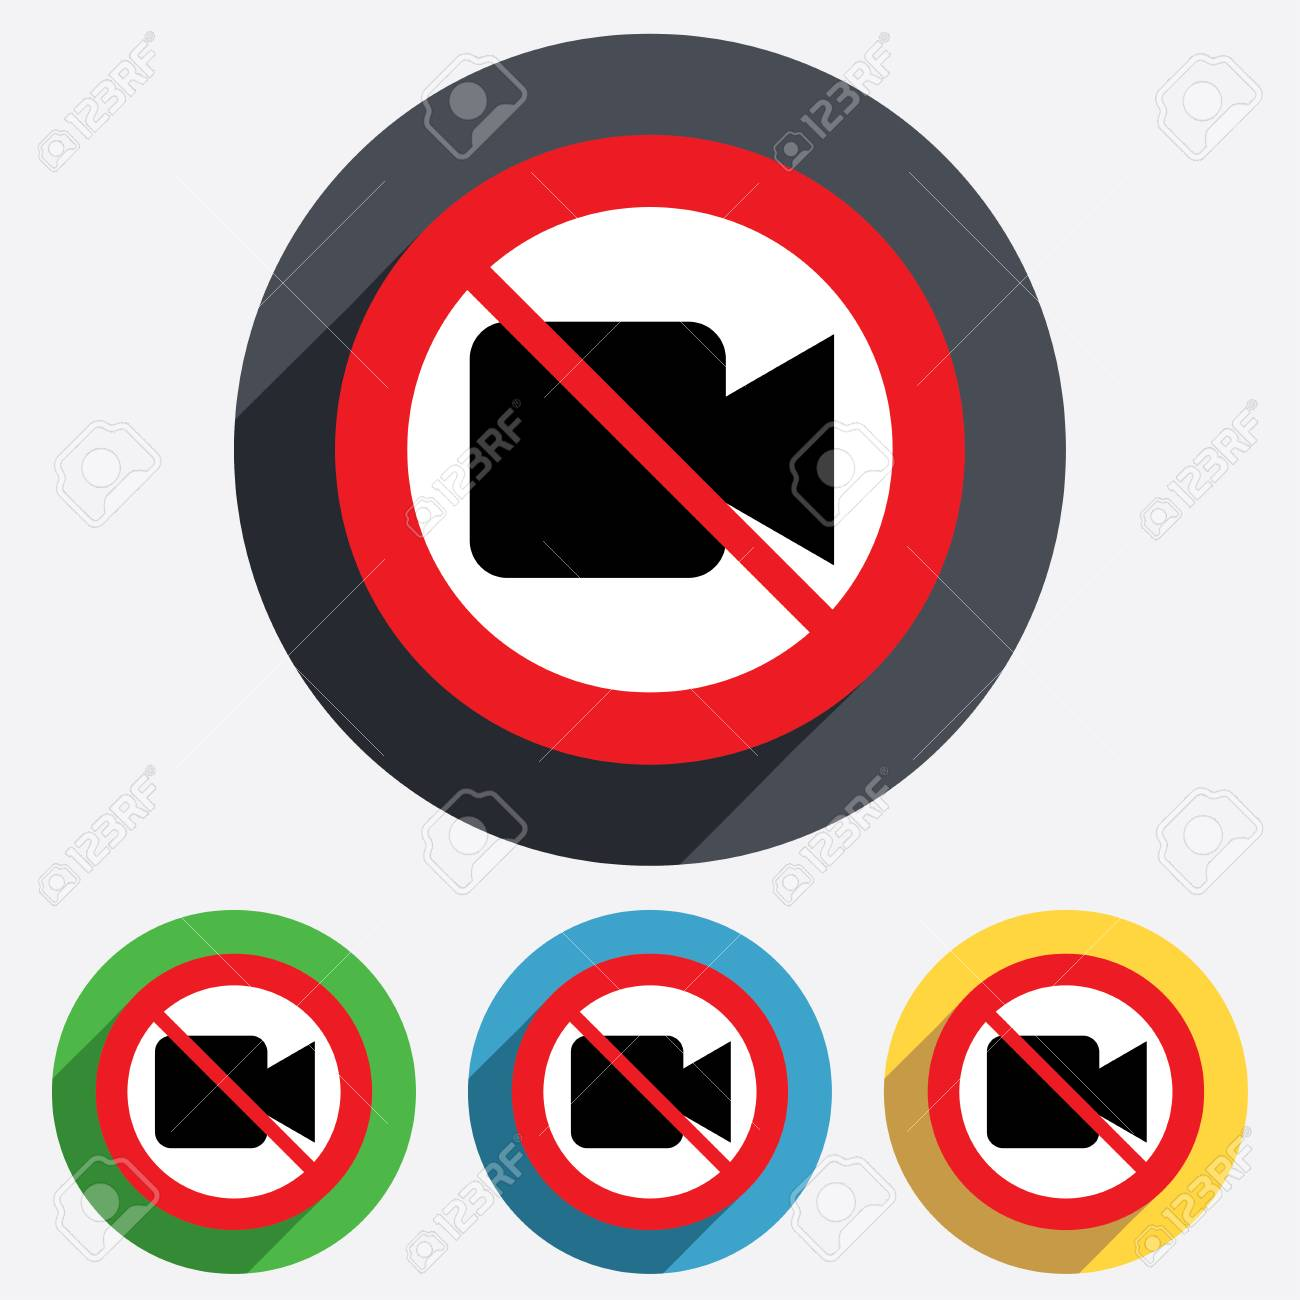 Do not record. Video camera sign icon. Video content button. Red circle prohibition sign. Stop flat symbol. Stock Photo - 25833451